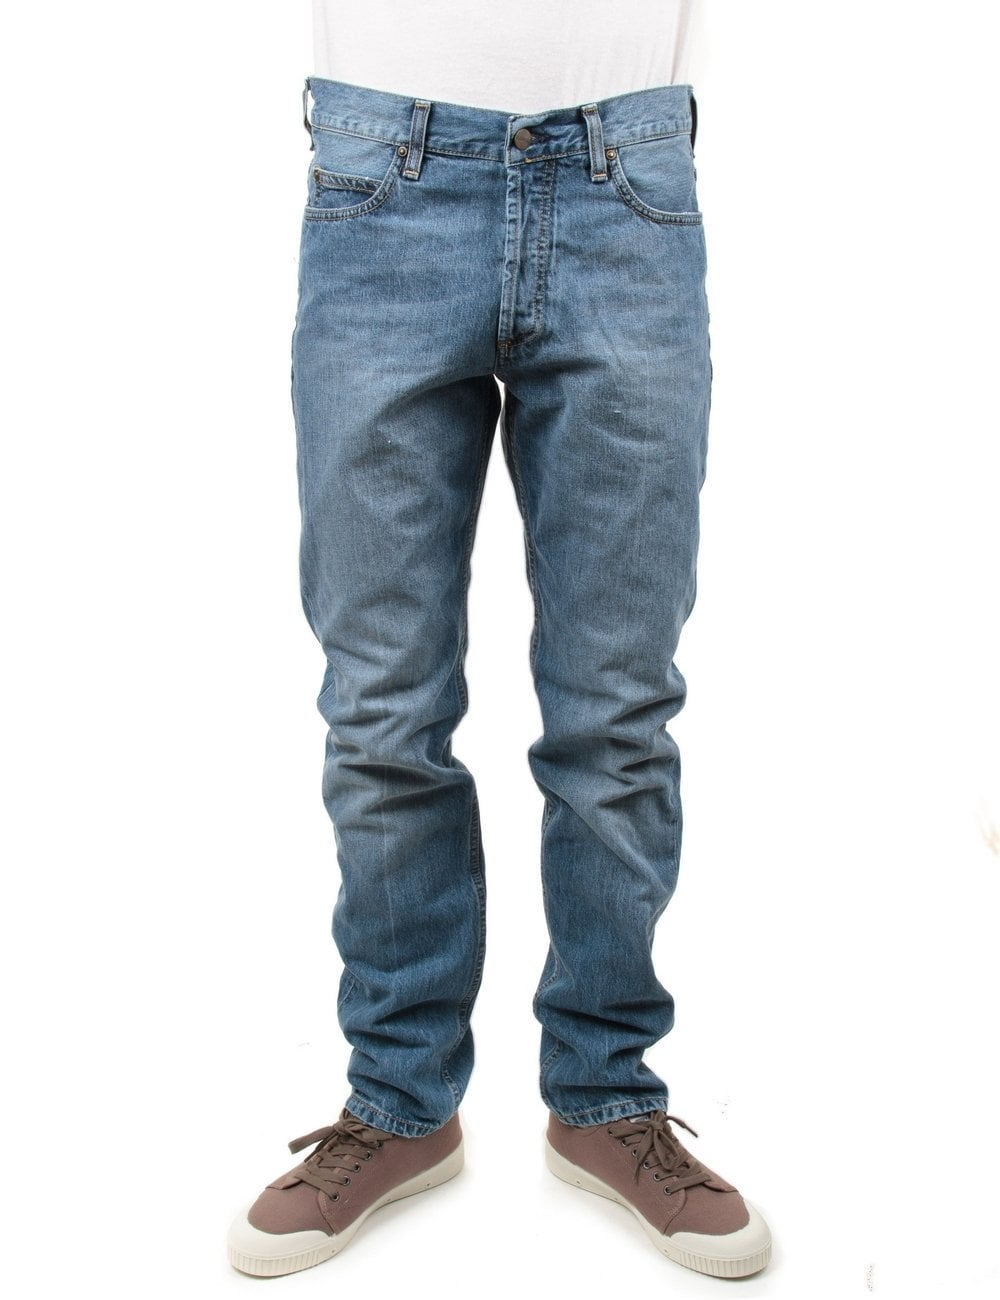 53be5a76 Carhartt WIP Texas Pant II - Blue Pier Wash - Clothing from Fat Buddha  Store UK